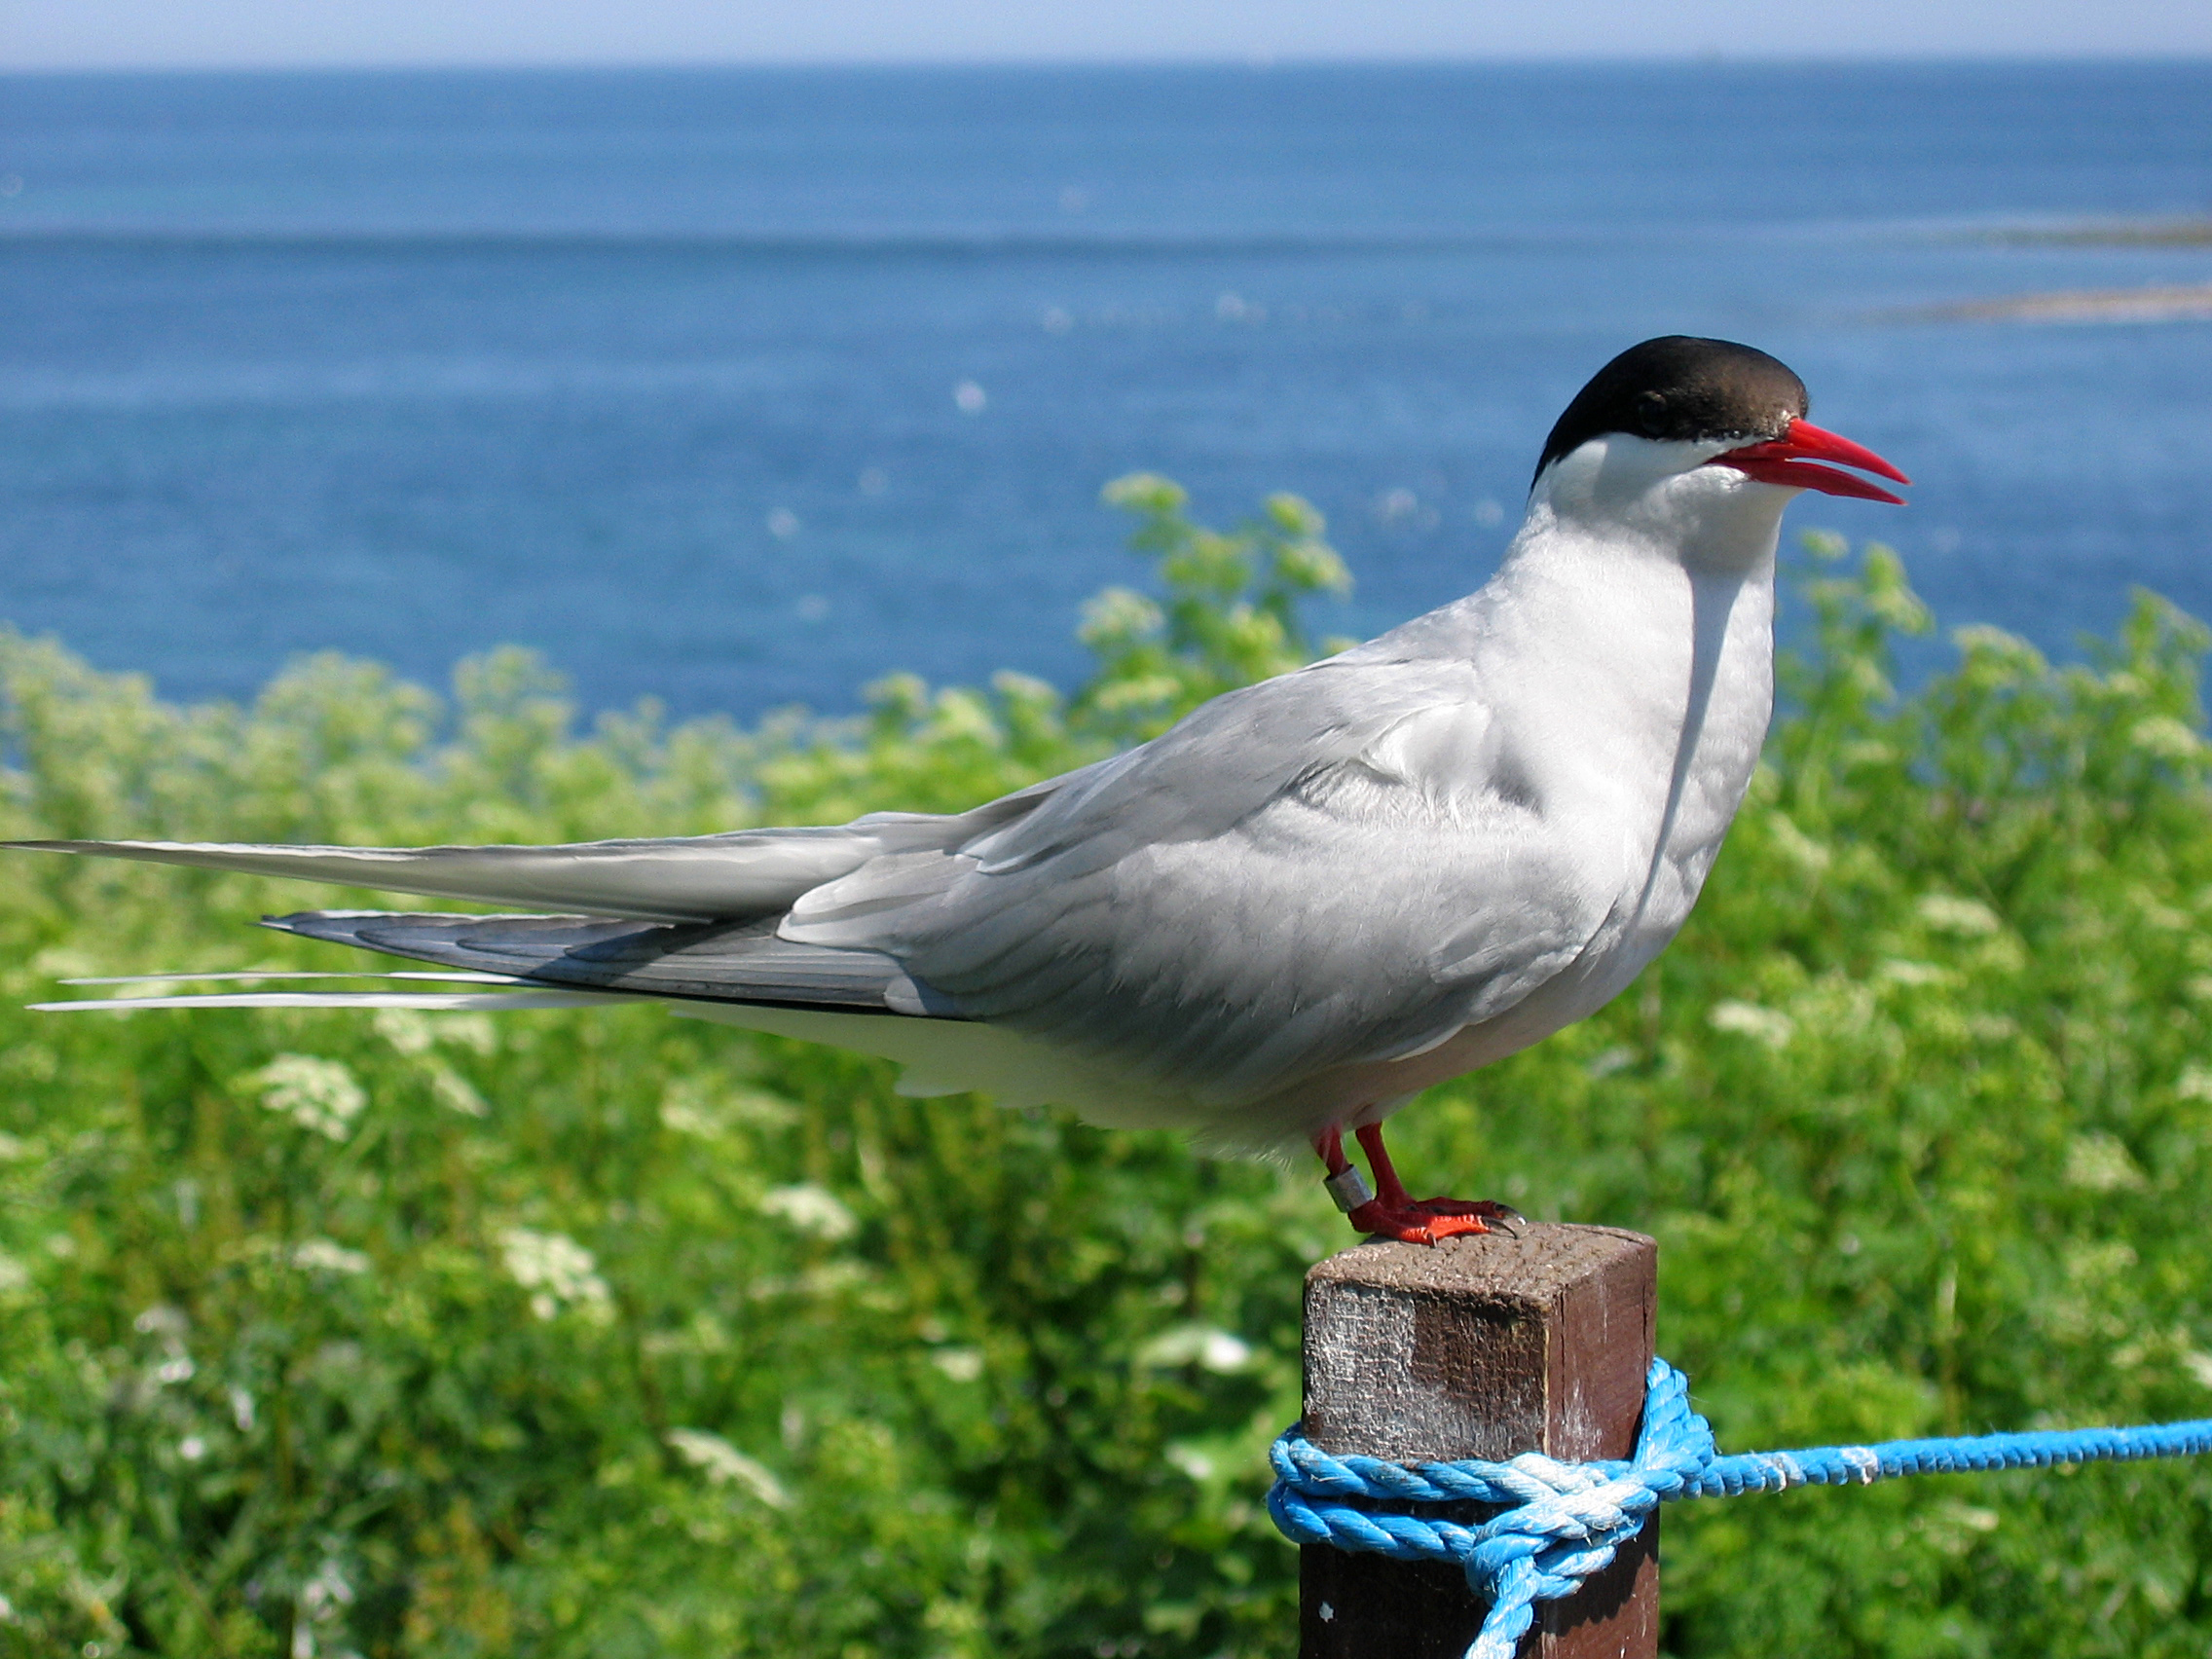 https://upload.wikimedia.org/wikipedia/commons/2/29/2009_07_02_-_Arctic_tern_on_Farne_Islands_-_The_blue_rope_demarcates_the_visitors%27_path.JPG